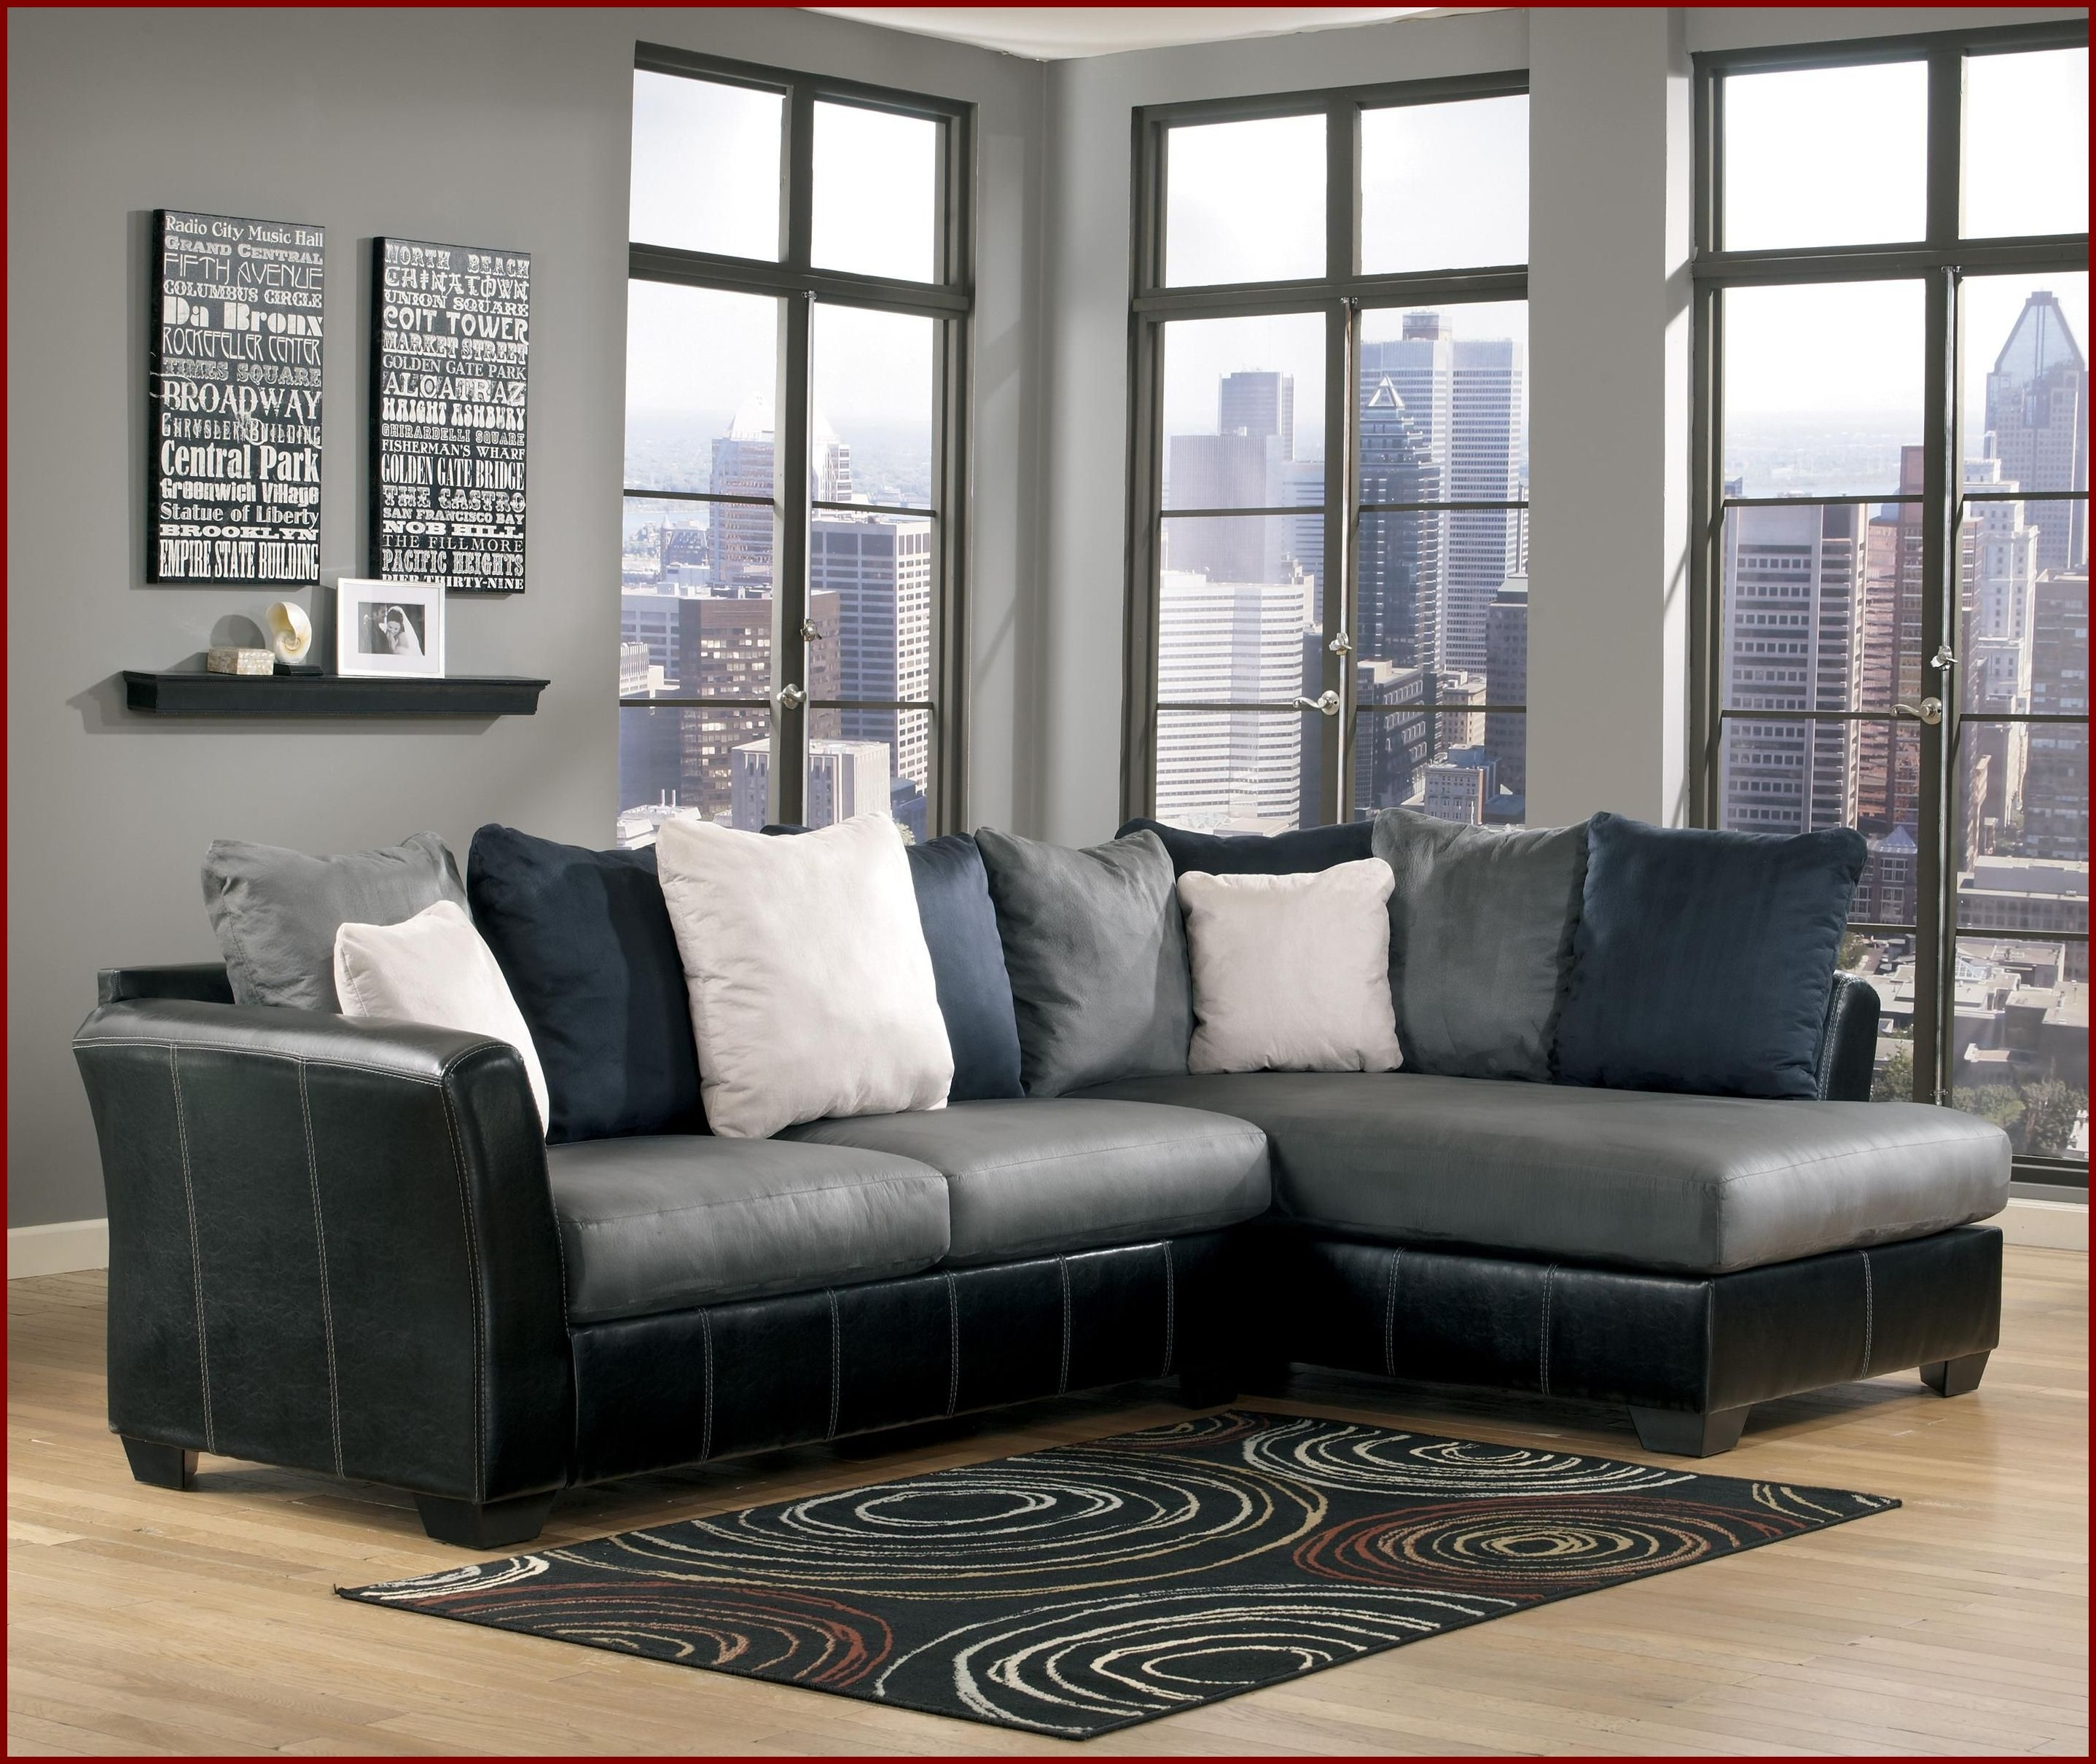 2 Pc Sectional Sofa Chaise | Best Home Furniture Ideas In Delano 2 Piece Sectionals With Raf Oversized Chaise (Image 1 of 25)